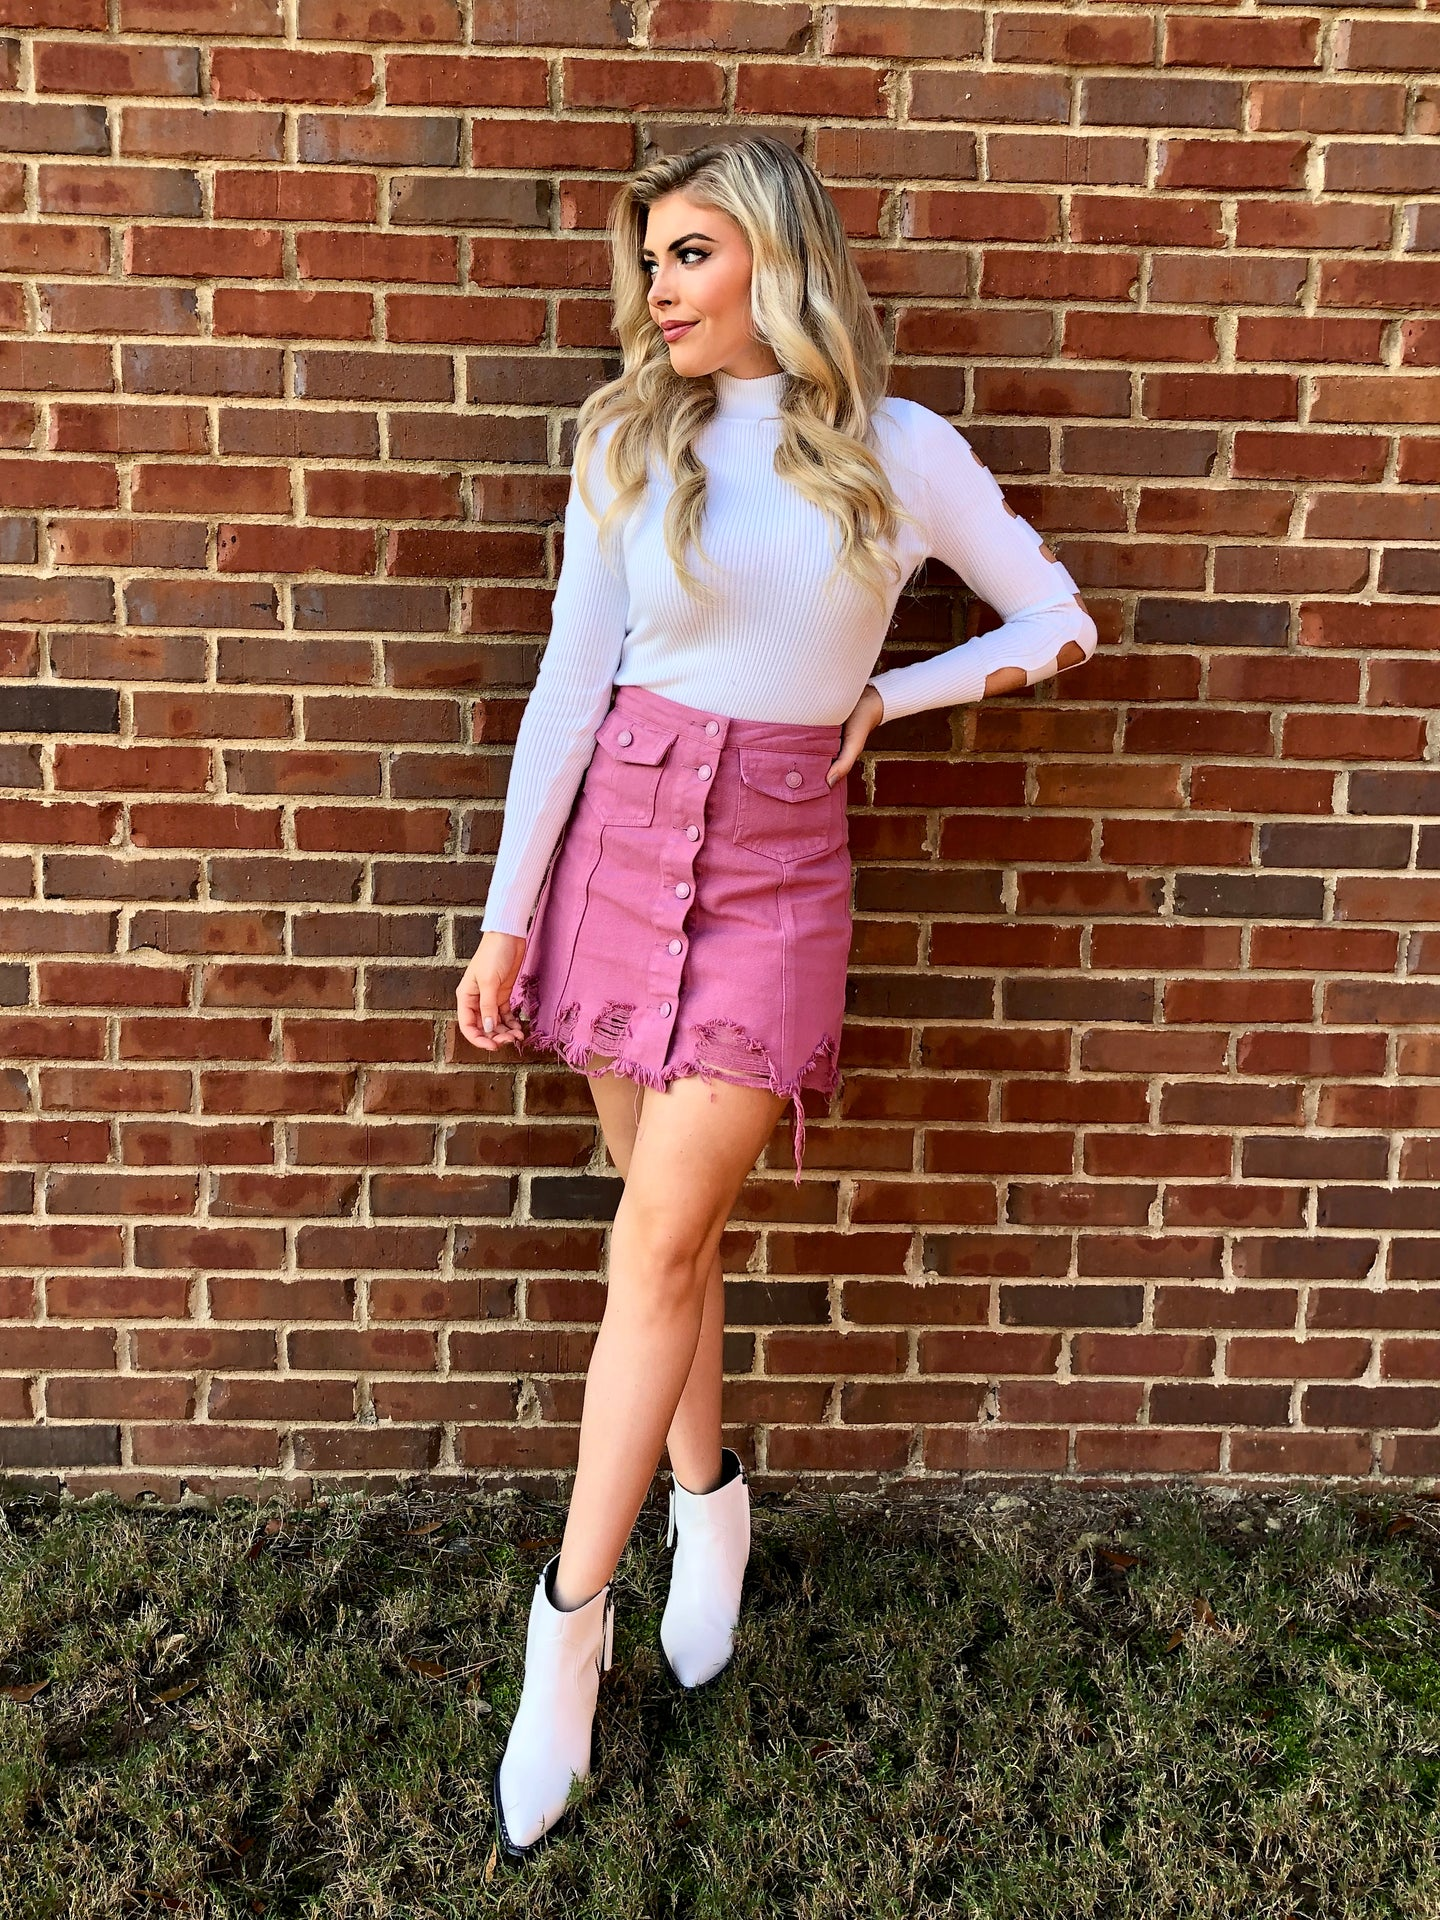 Blonde woman wearing a dusty pink distressed hemline skirt with buttons and pockets